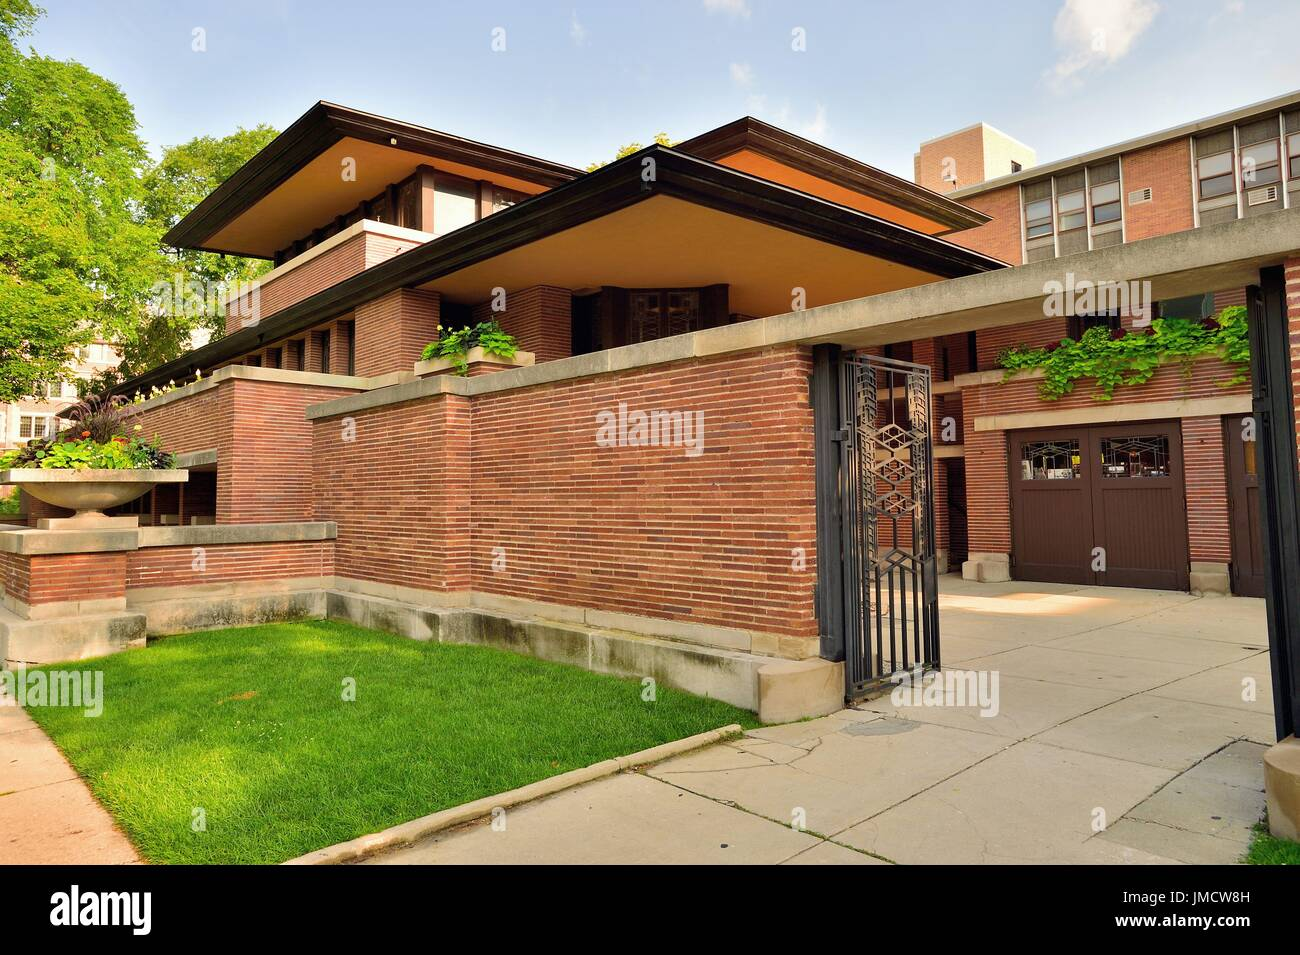 the frederick c robie house a frank lloyd wright home built stock photo the frederick c robie house a frank lloyd wright home built between 1908 10 it is renowned as the greatest example of the prairie style of